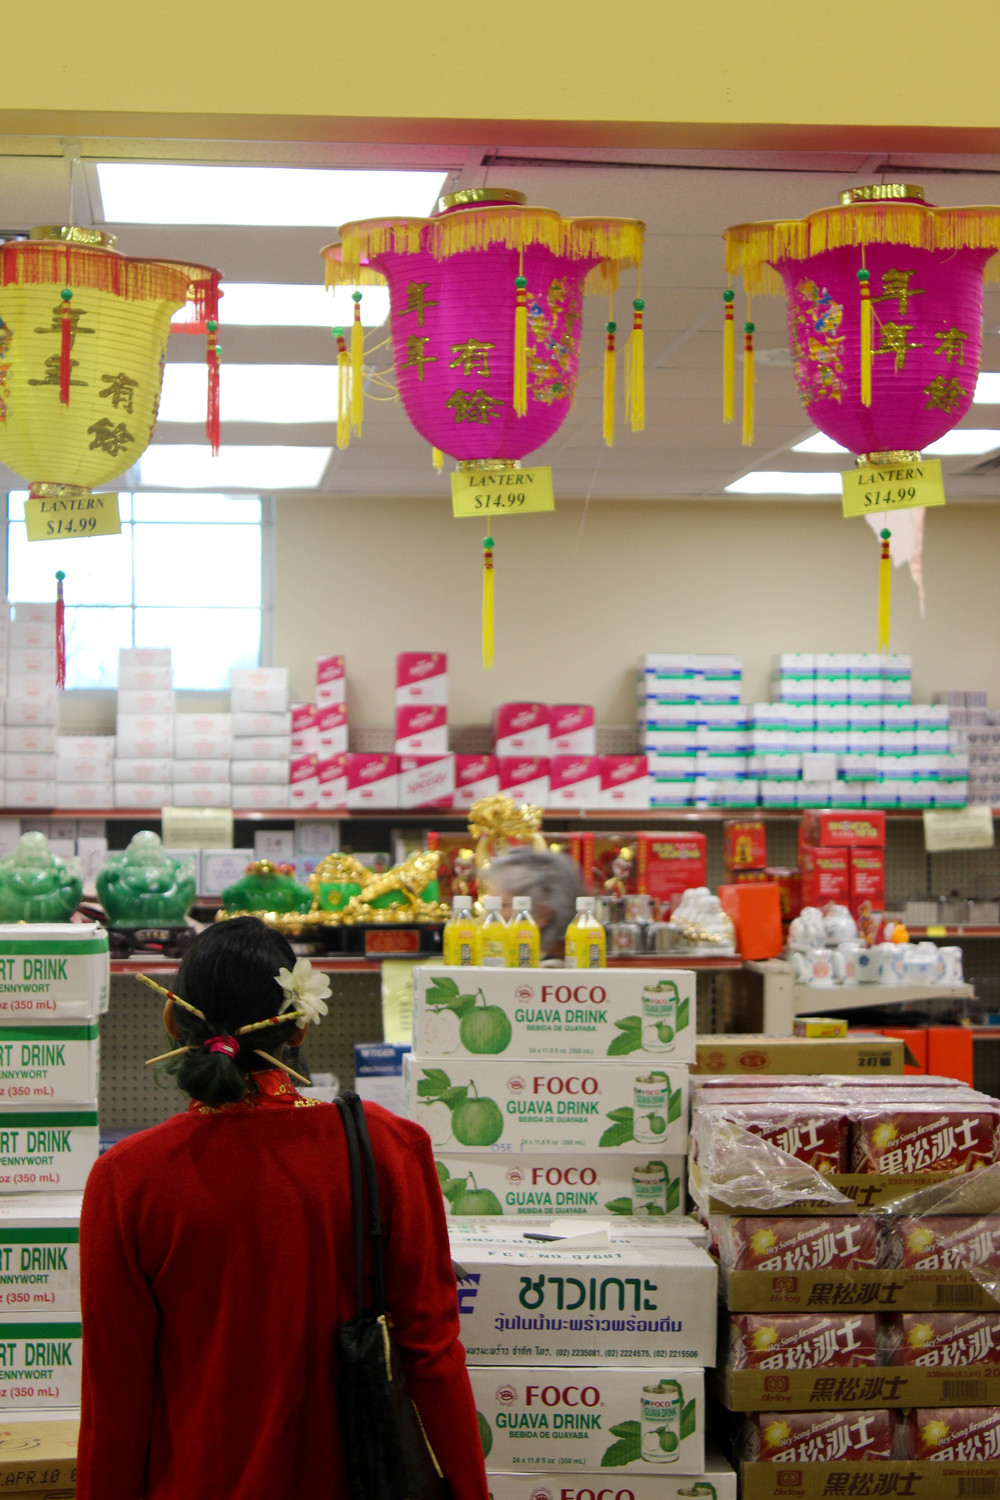 The Chinatown Market sells Chinese New Year decorations.